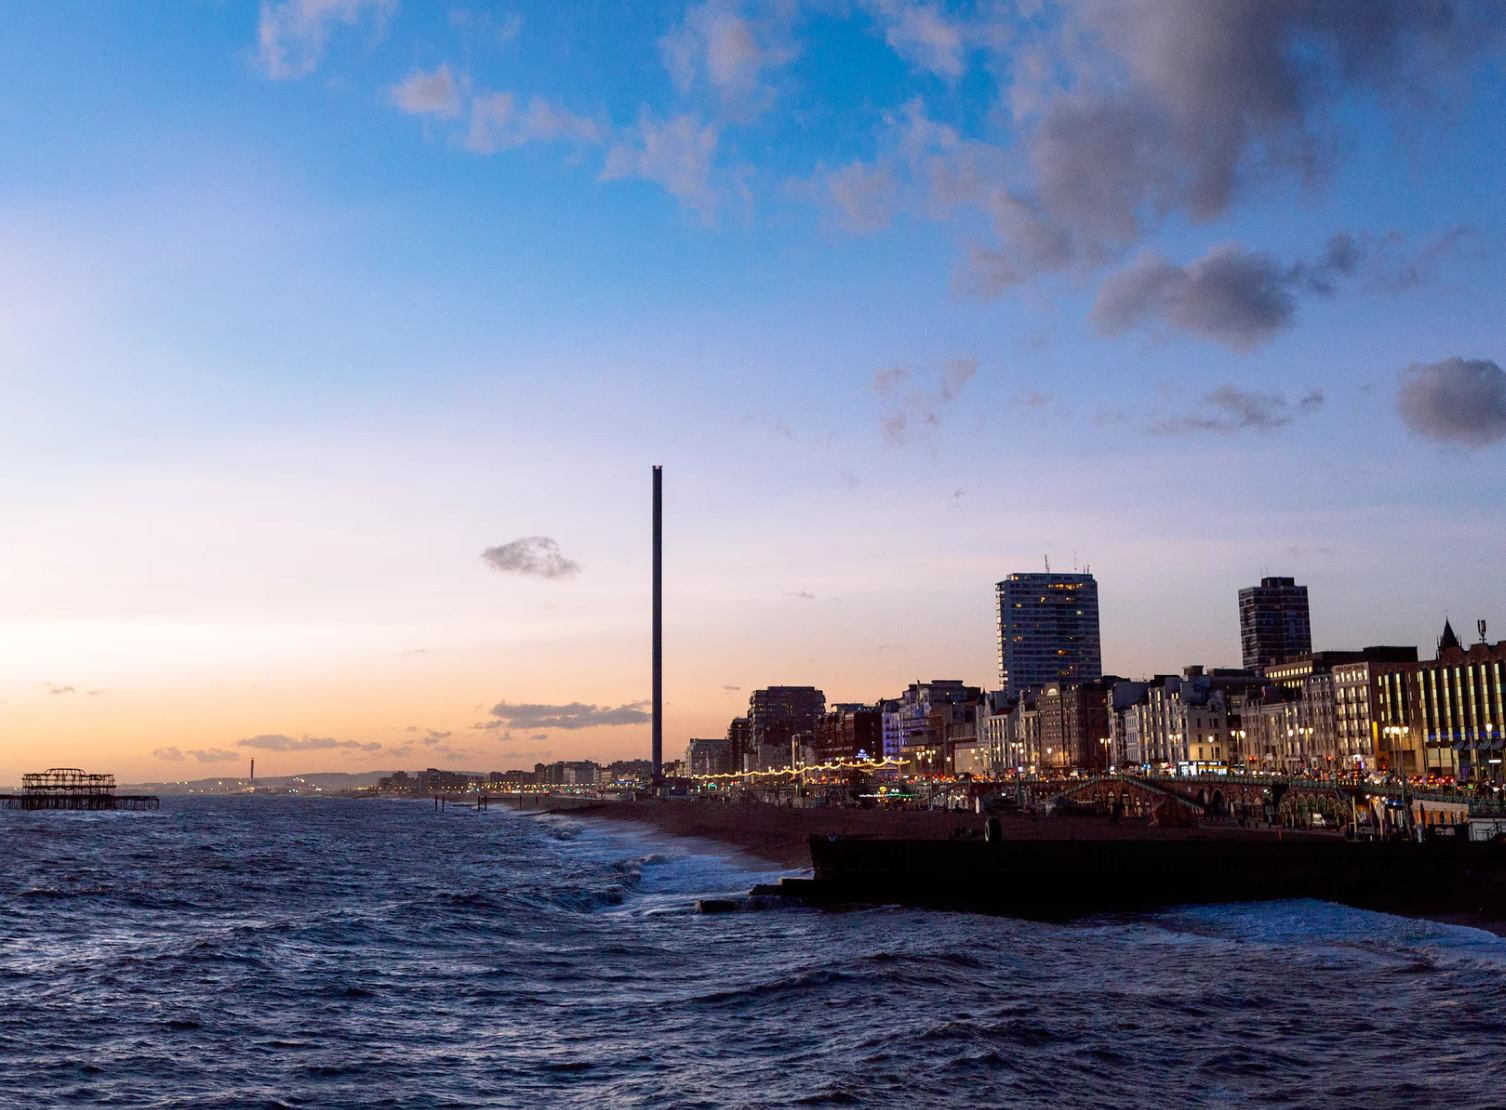 Photograph: British Airways i360